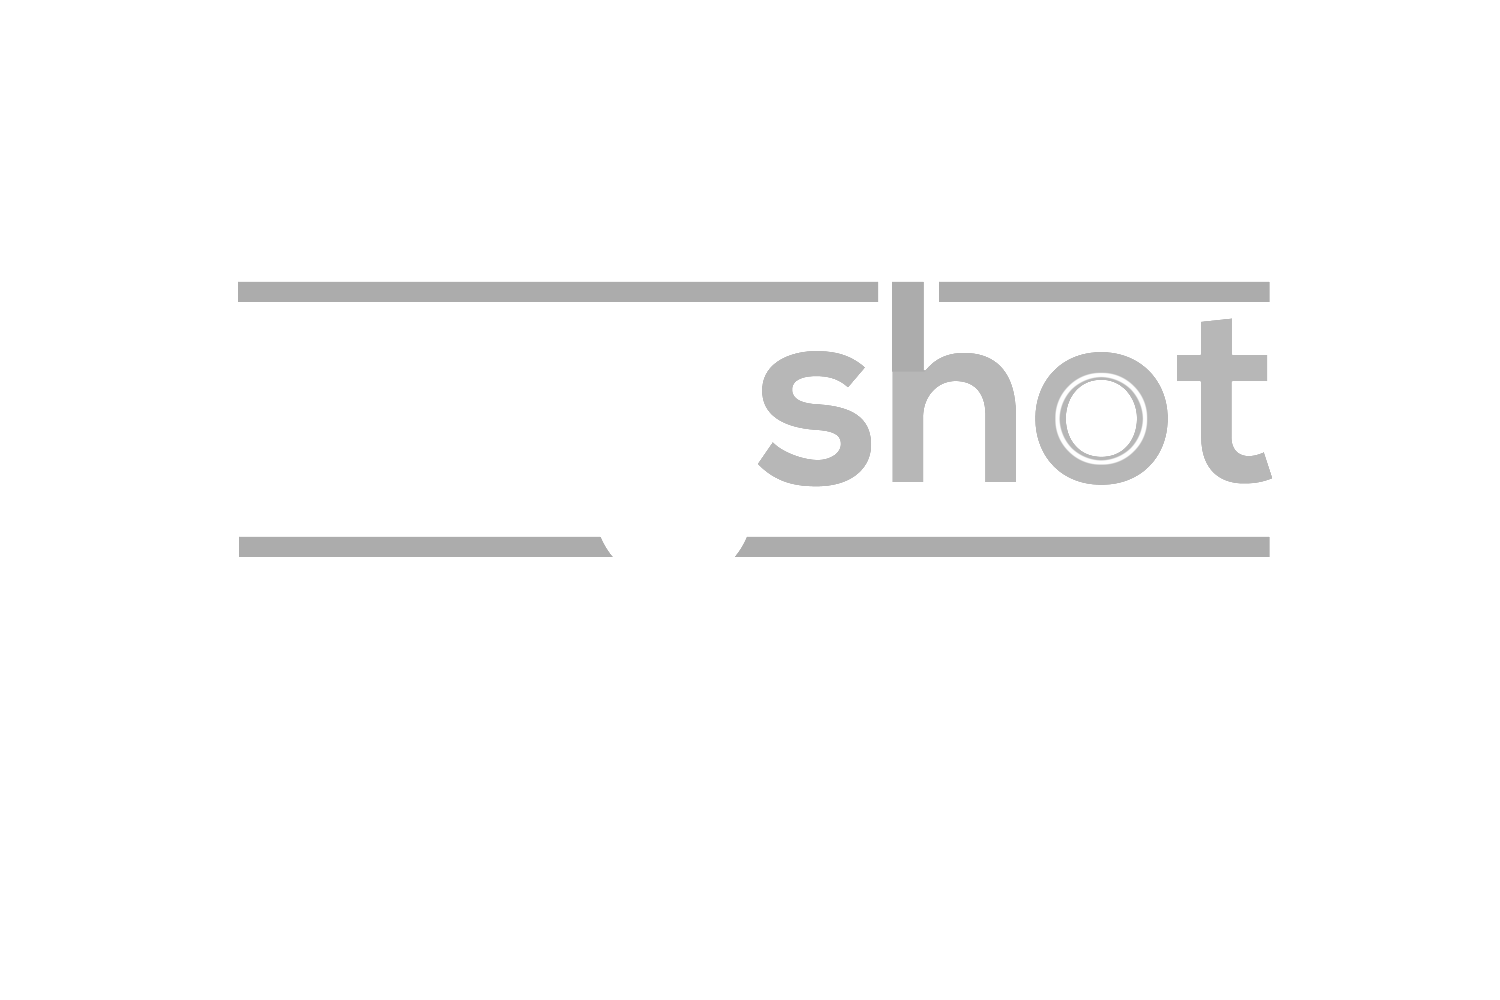 Mugshot Sports Photos